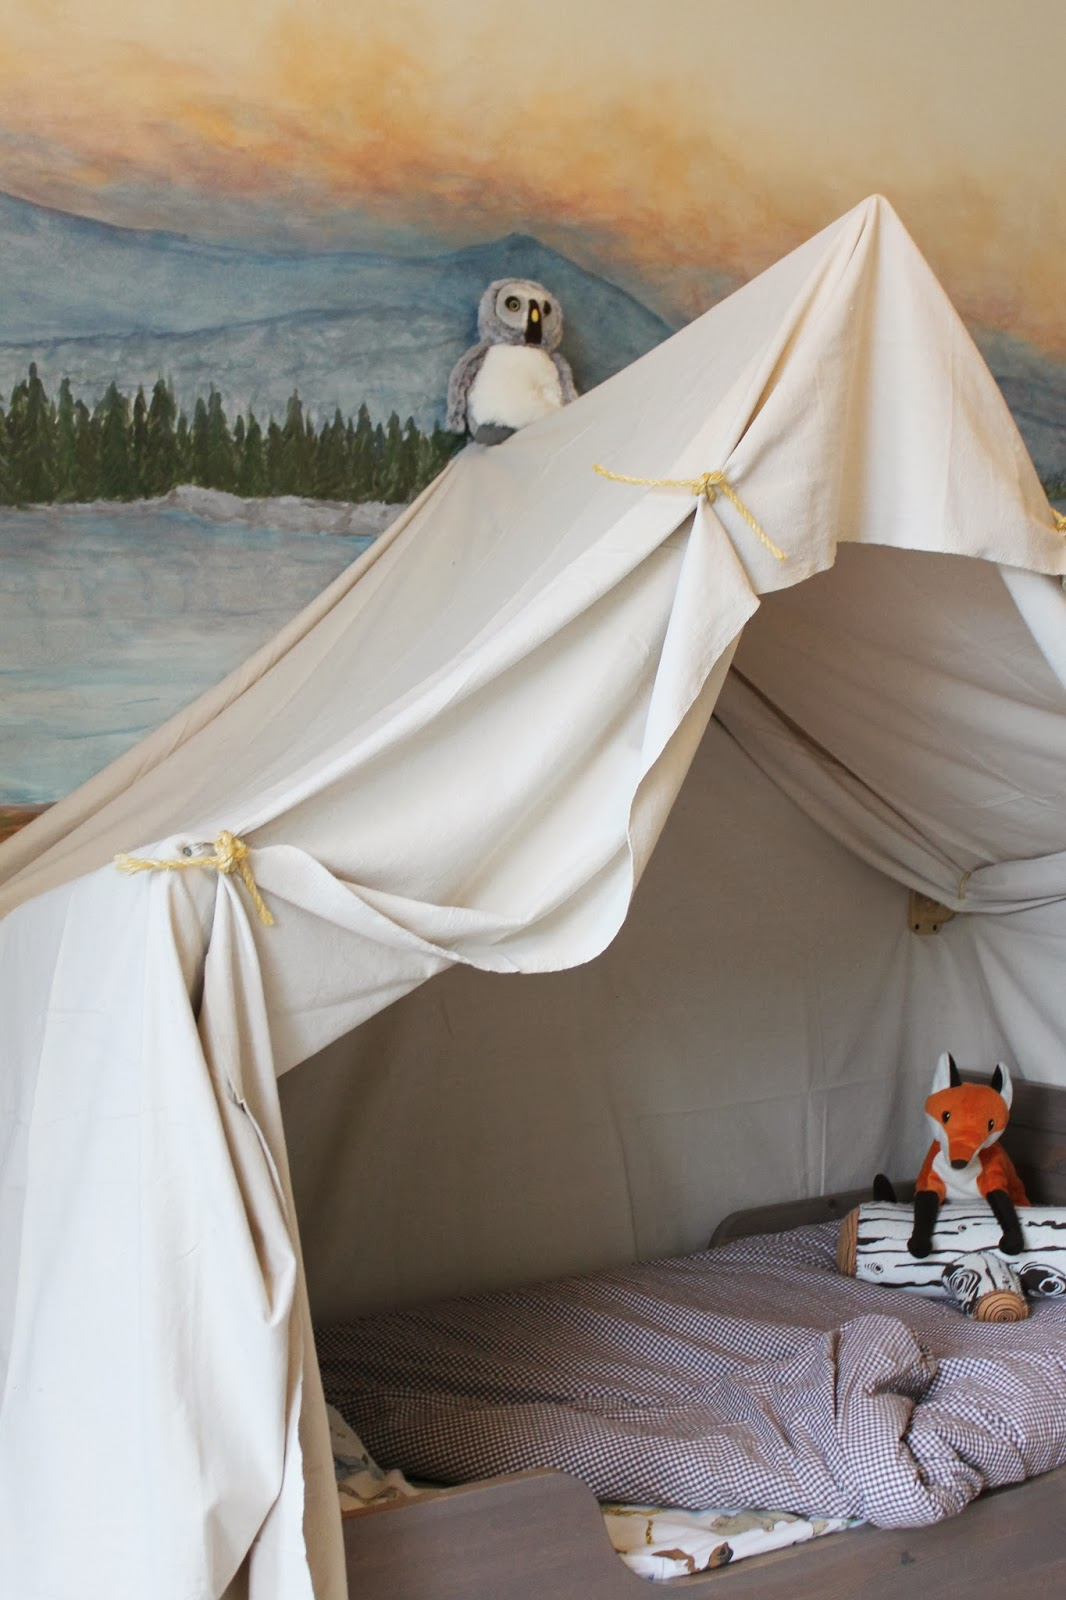 build a kids bed canopy that looks like an indoor c&ing tent The Ragged Wren & Remodelaholic | Camping Tent Bed in a Kidu0027s Woodland Bedroom